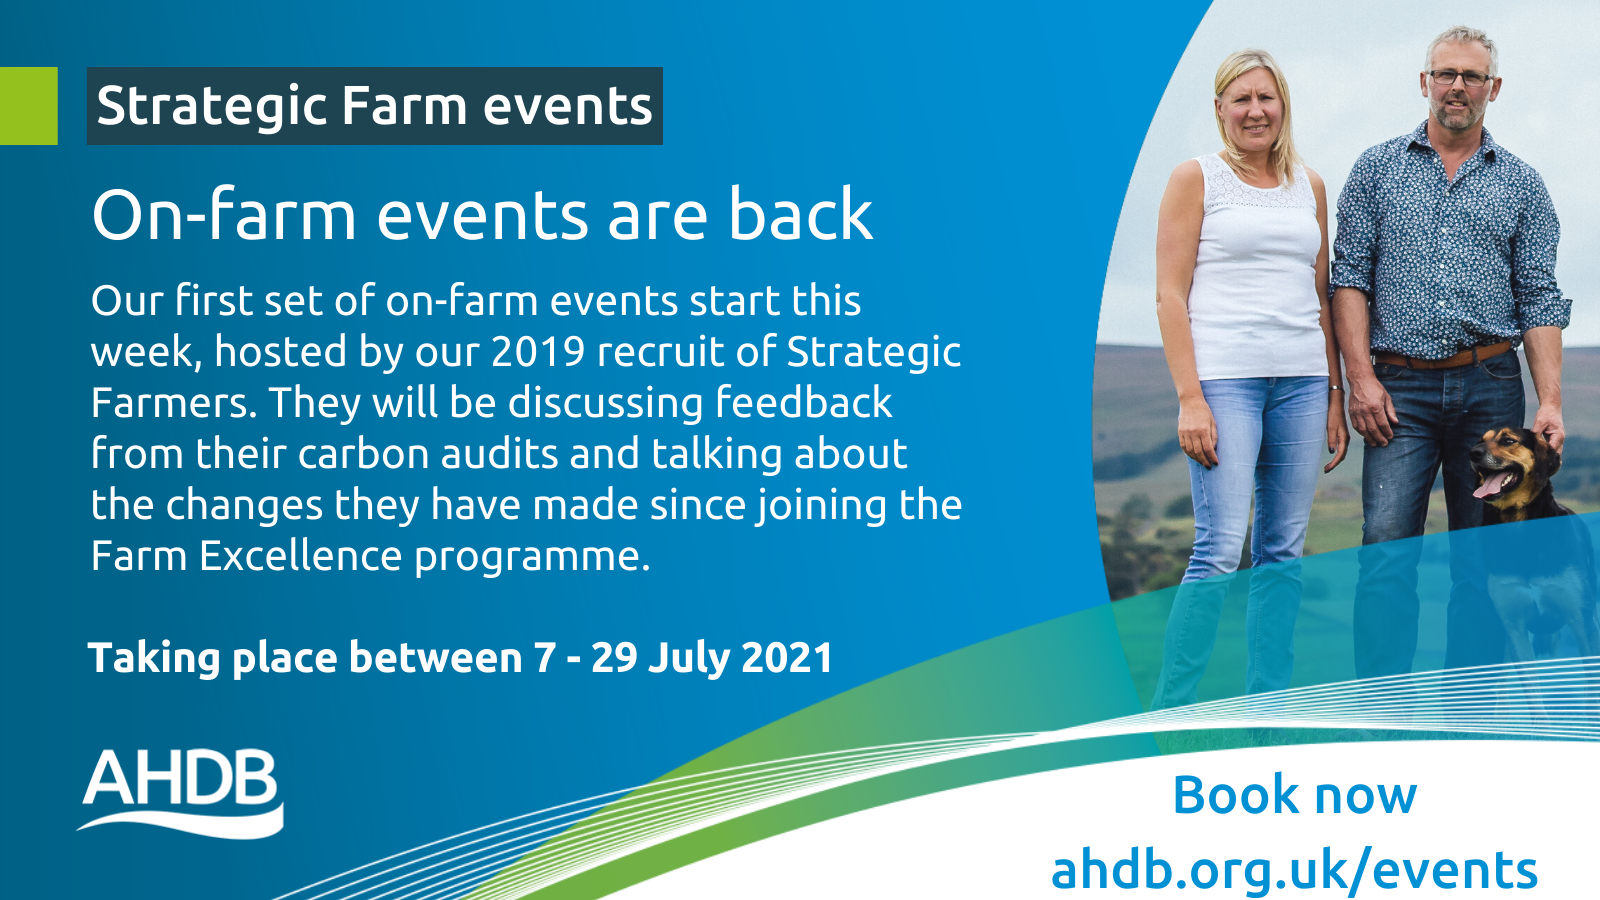 On-farm events are back